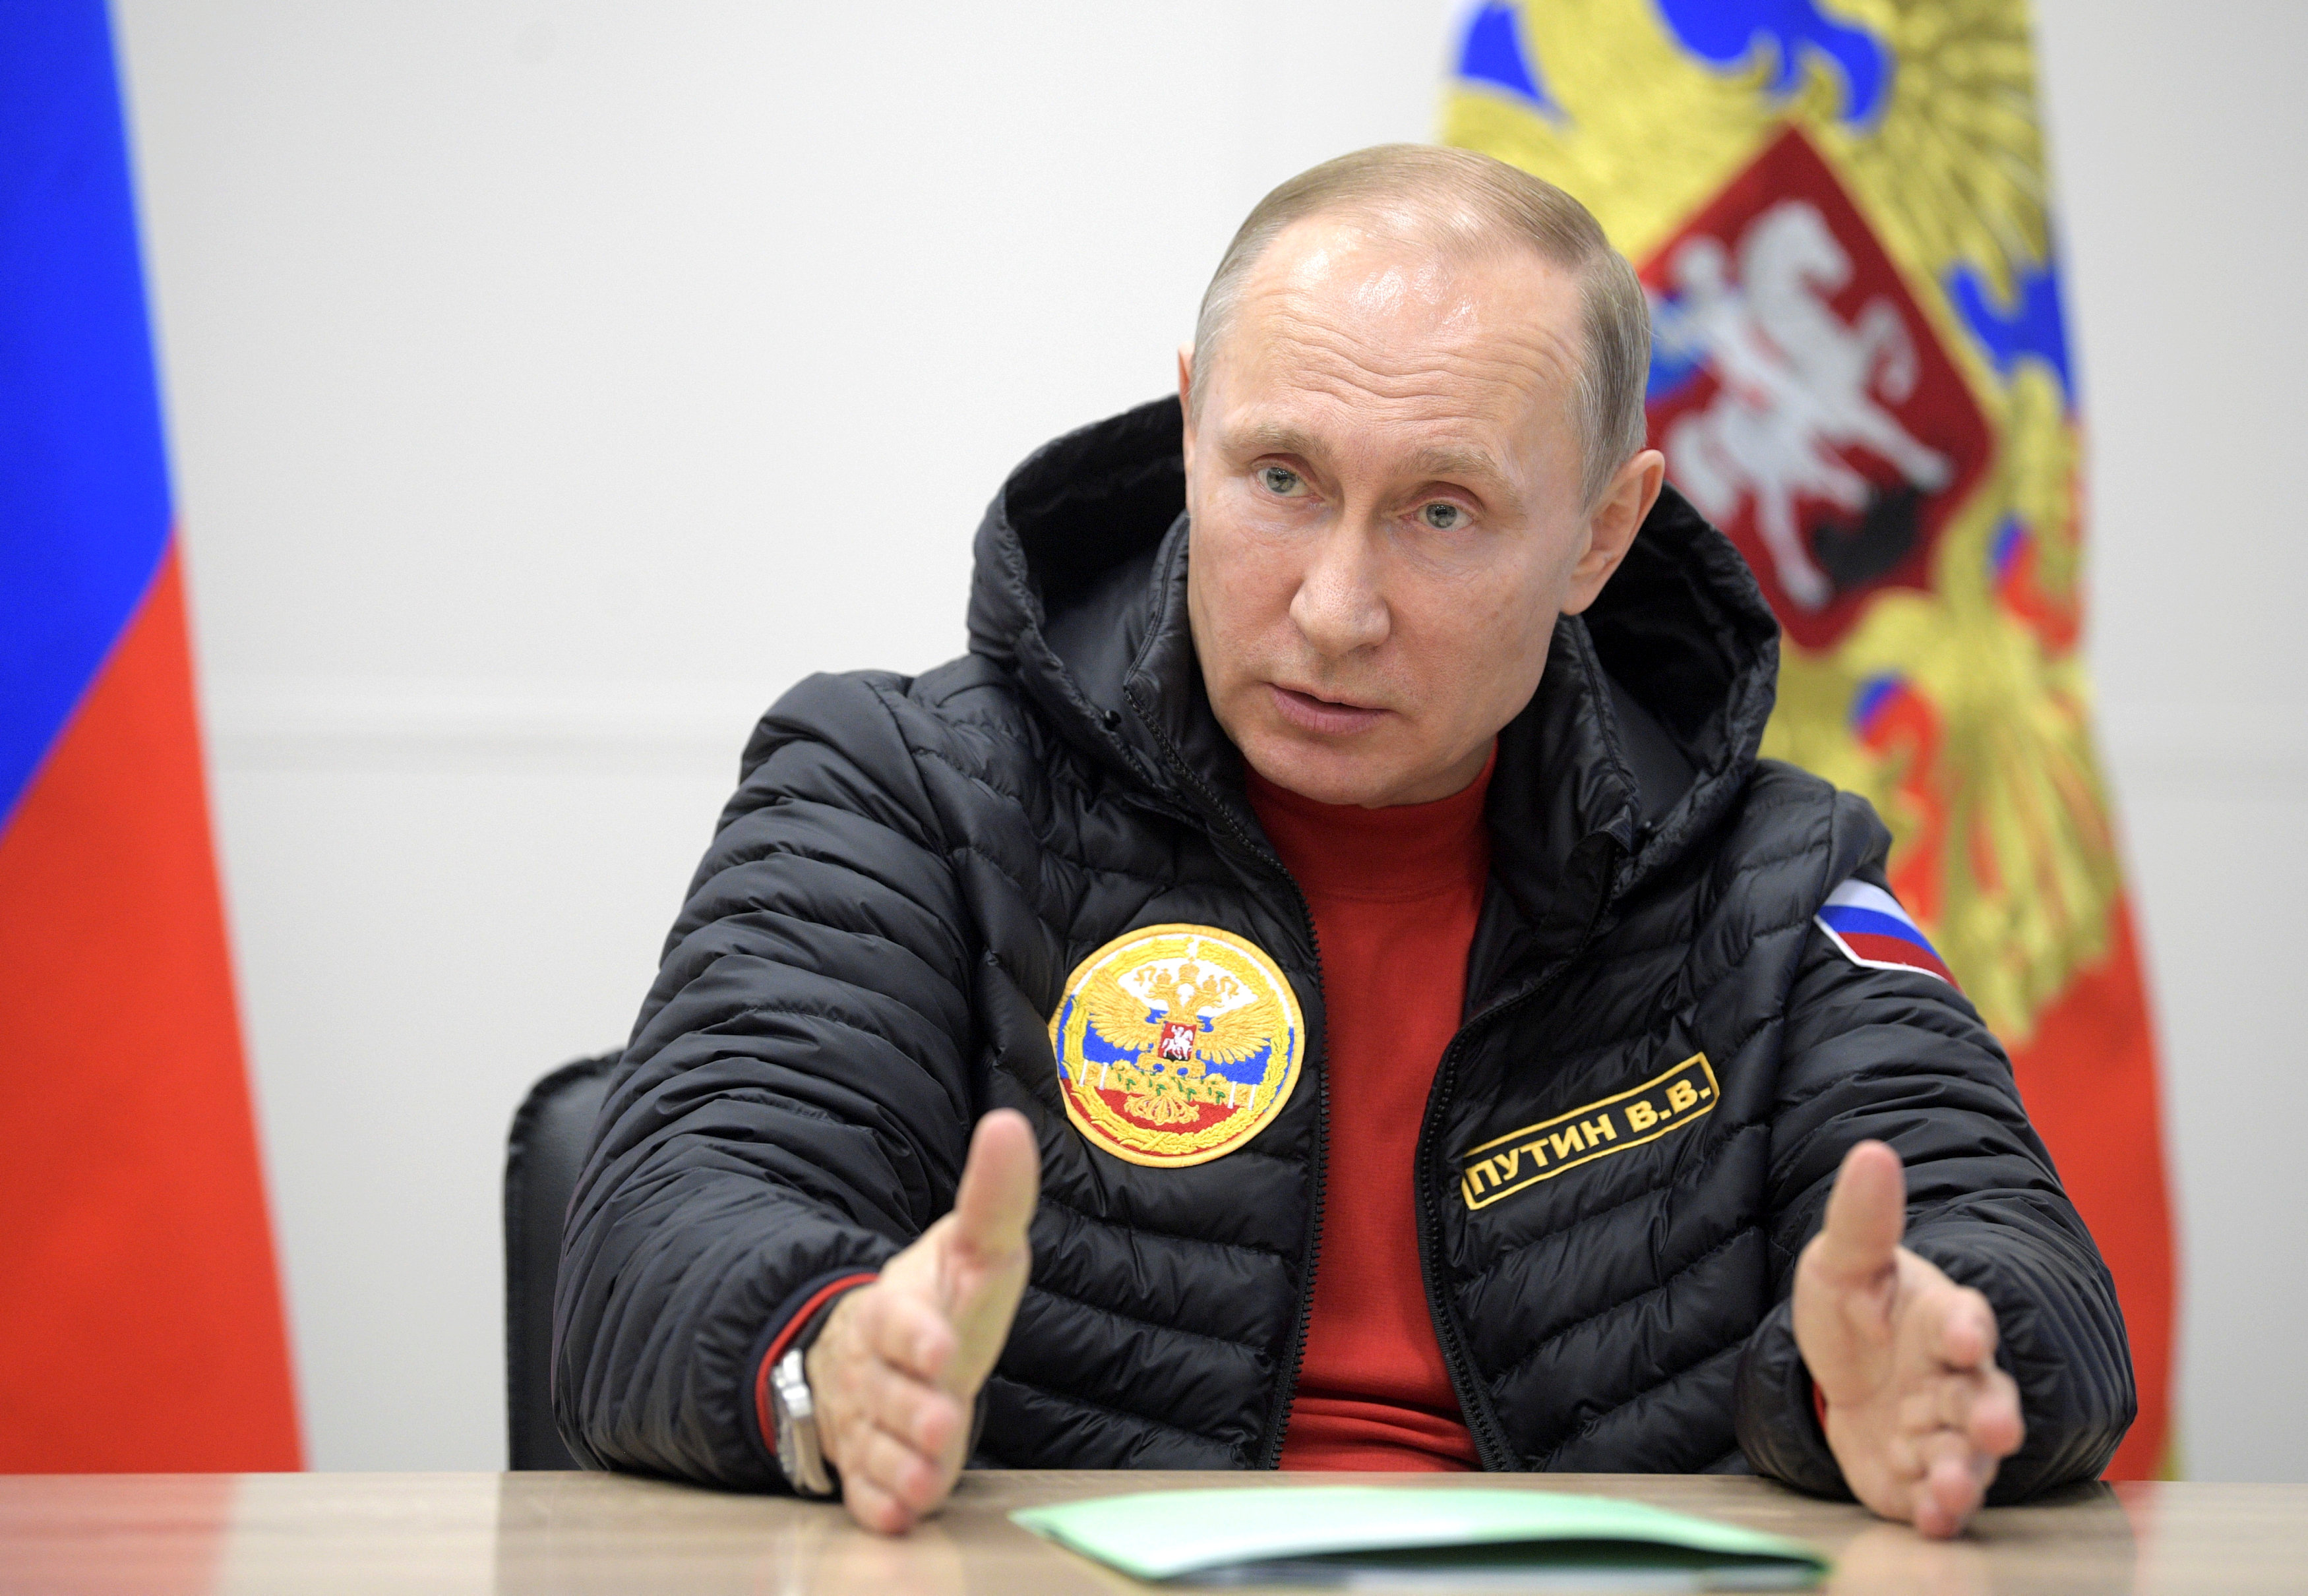 Russian President Vladimir Putin speaks during a meeting on integrated development of the Arctic at a military base in Alexandra Land in remote Arctic islands of Franz Josef Land, Russia, on March 29, 2017. (Sputnik/Alexei Druzhinin/Kremlin via Reuters)